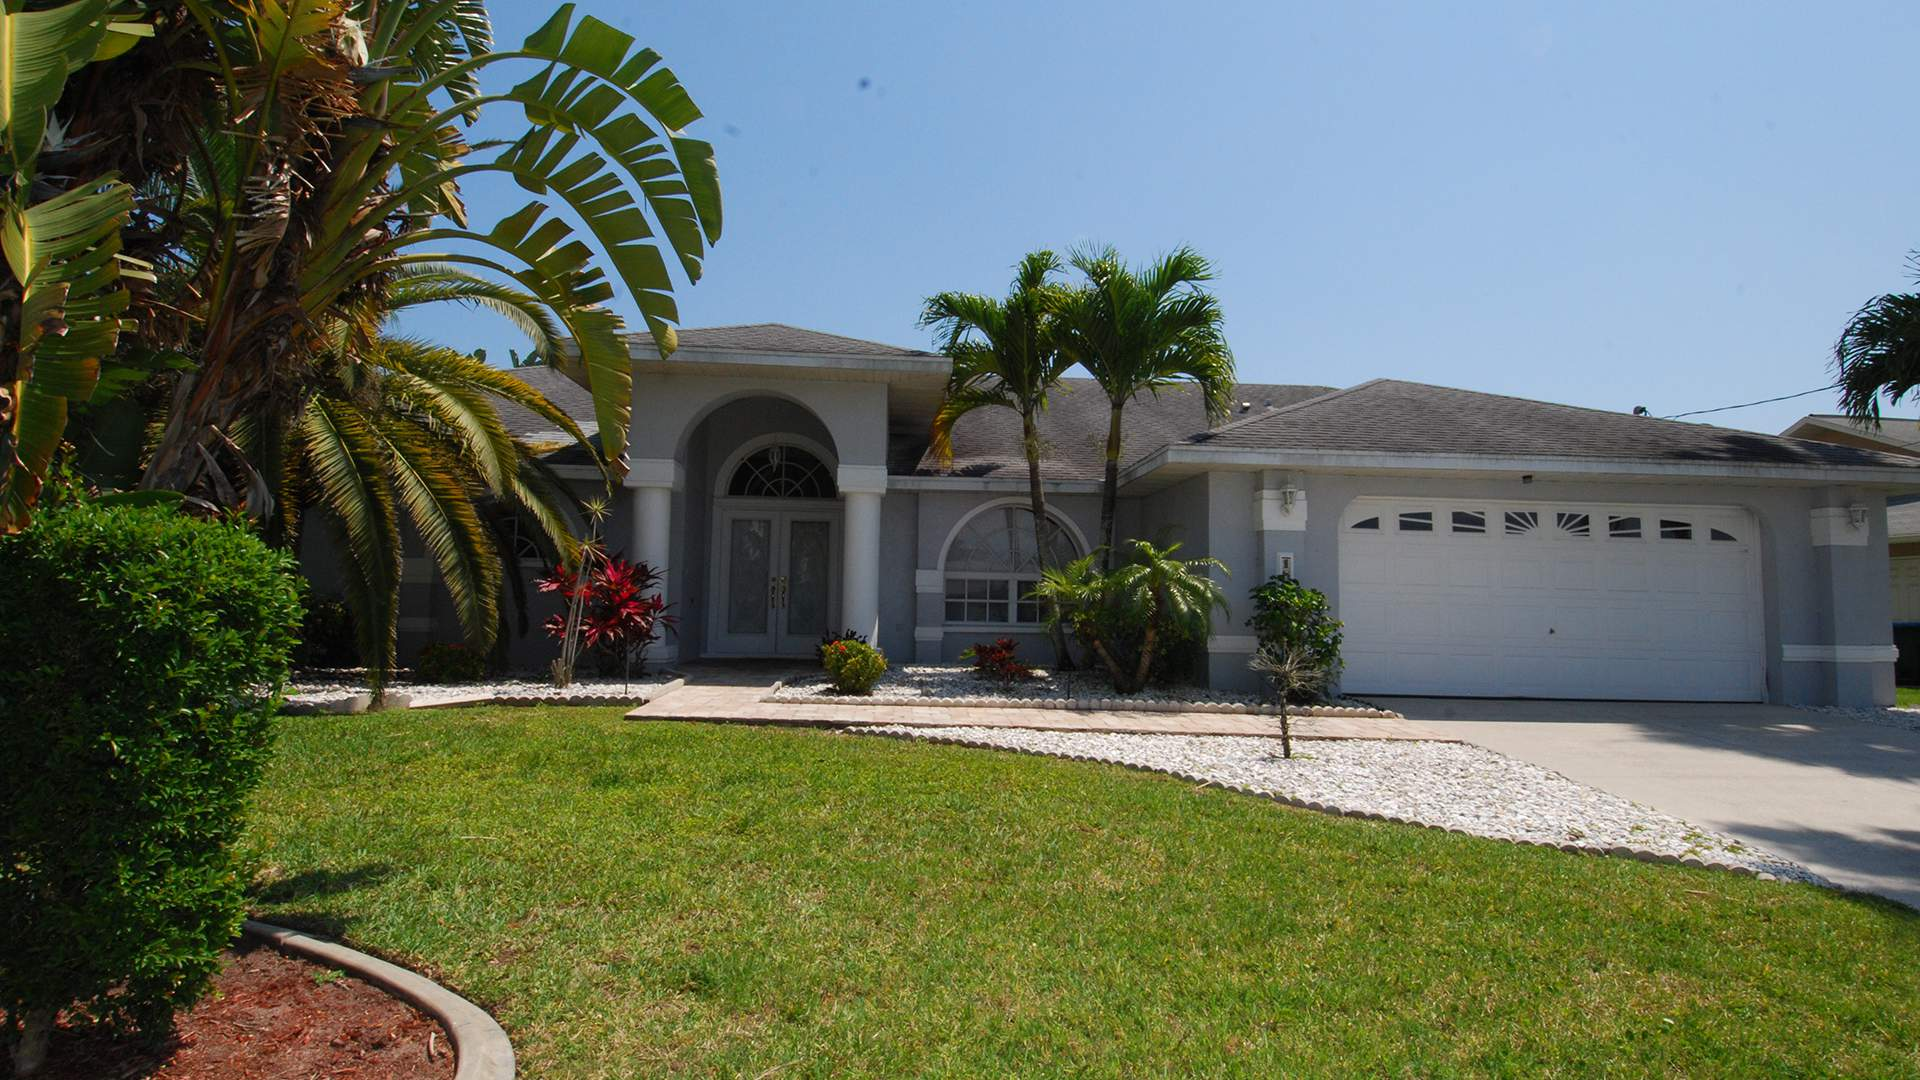 Fort Myers Beach North Places To Stay Map besides Naples Fl Connors Of Vanderbilt Beach Boating  munity as well 85824030 in addition Attraction Review G34091 D531892 Reviews Bonita Springs Public Beach Bonita Springs Florida together with Marco Island. on bonita springs florida rentals